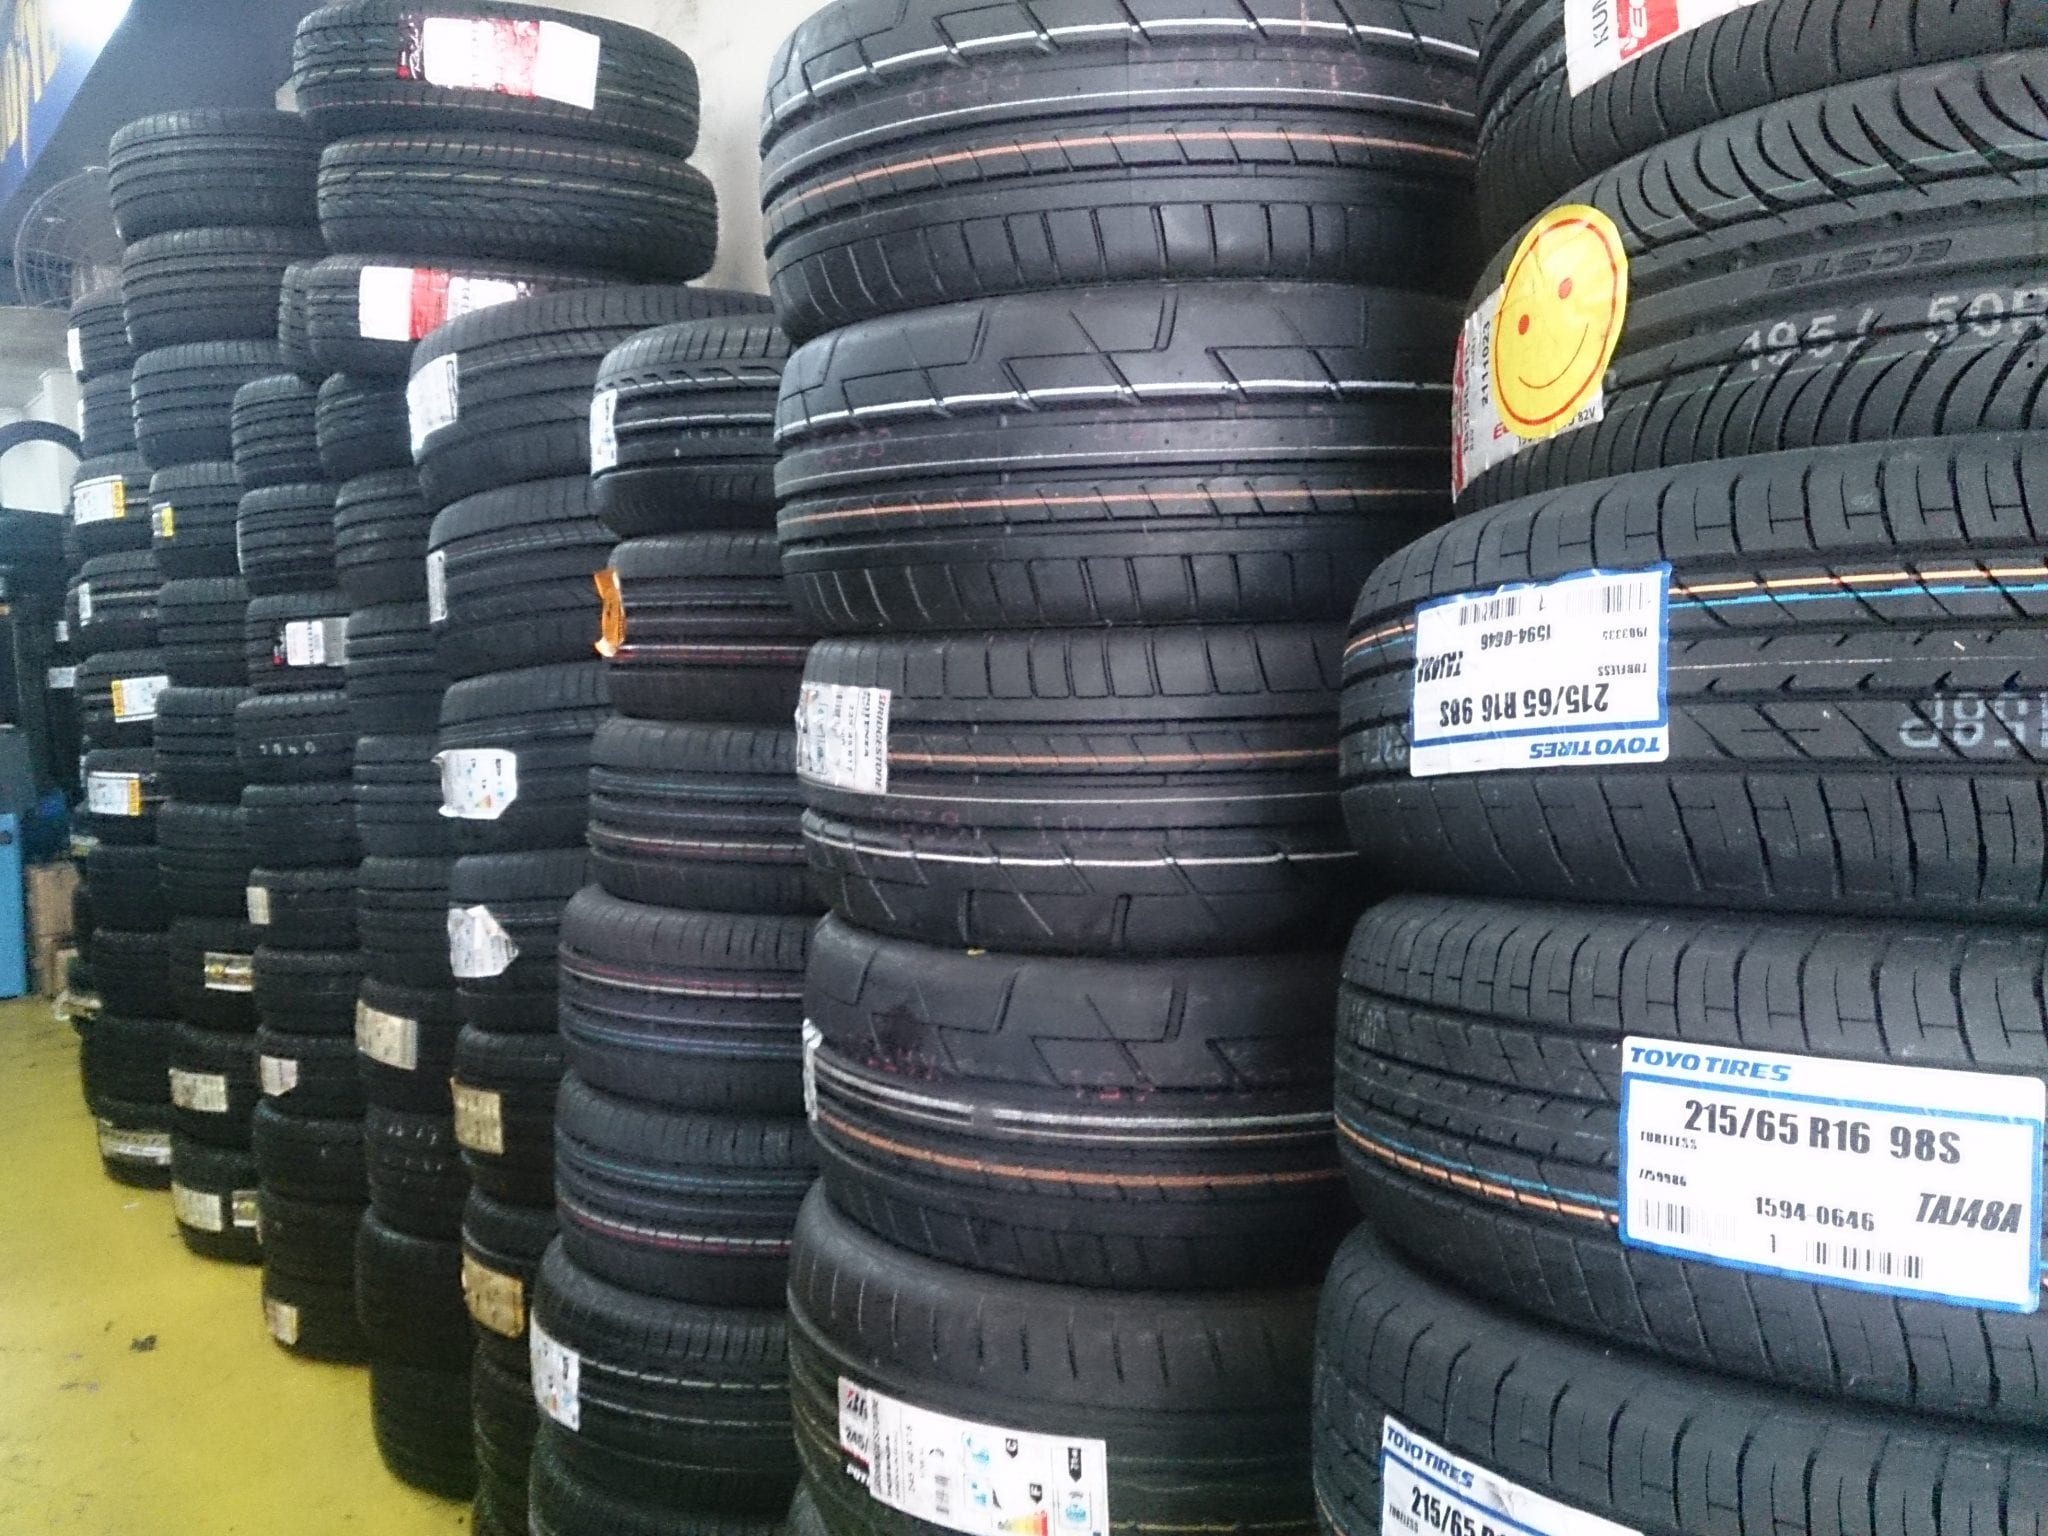 Tyres, Brakes, Exhausts, Batteries - We Can Supply Everything You Need